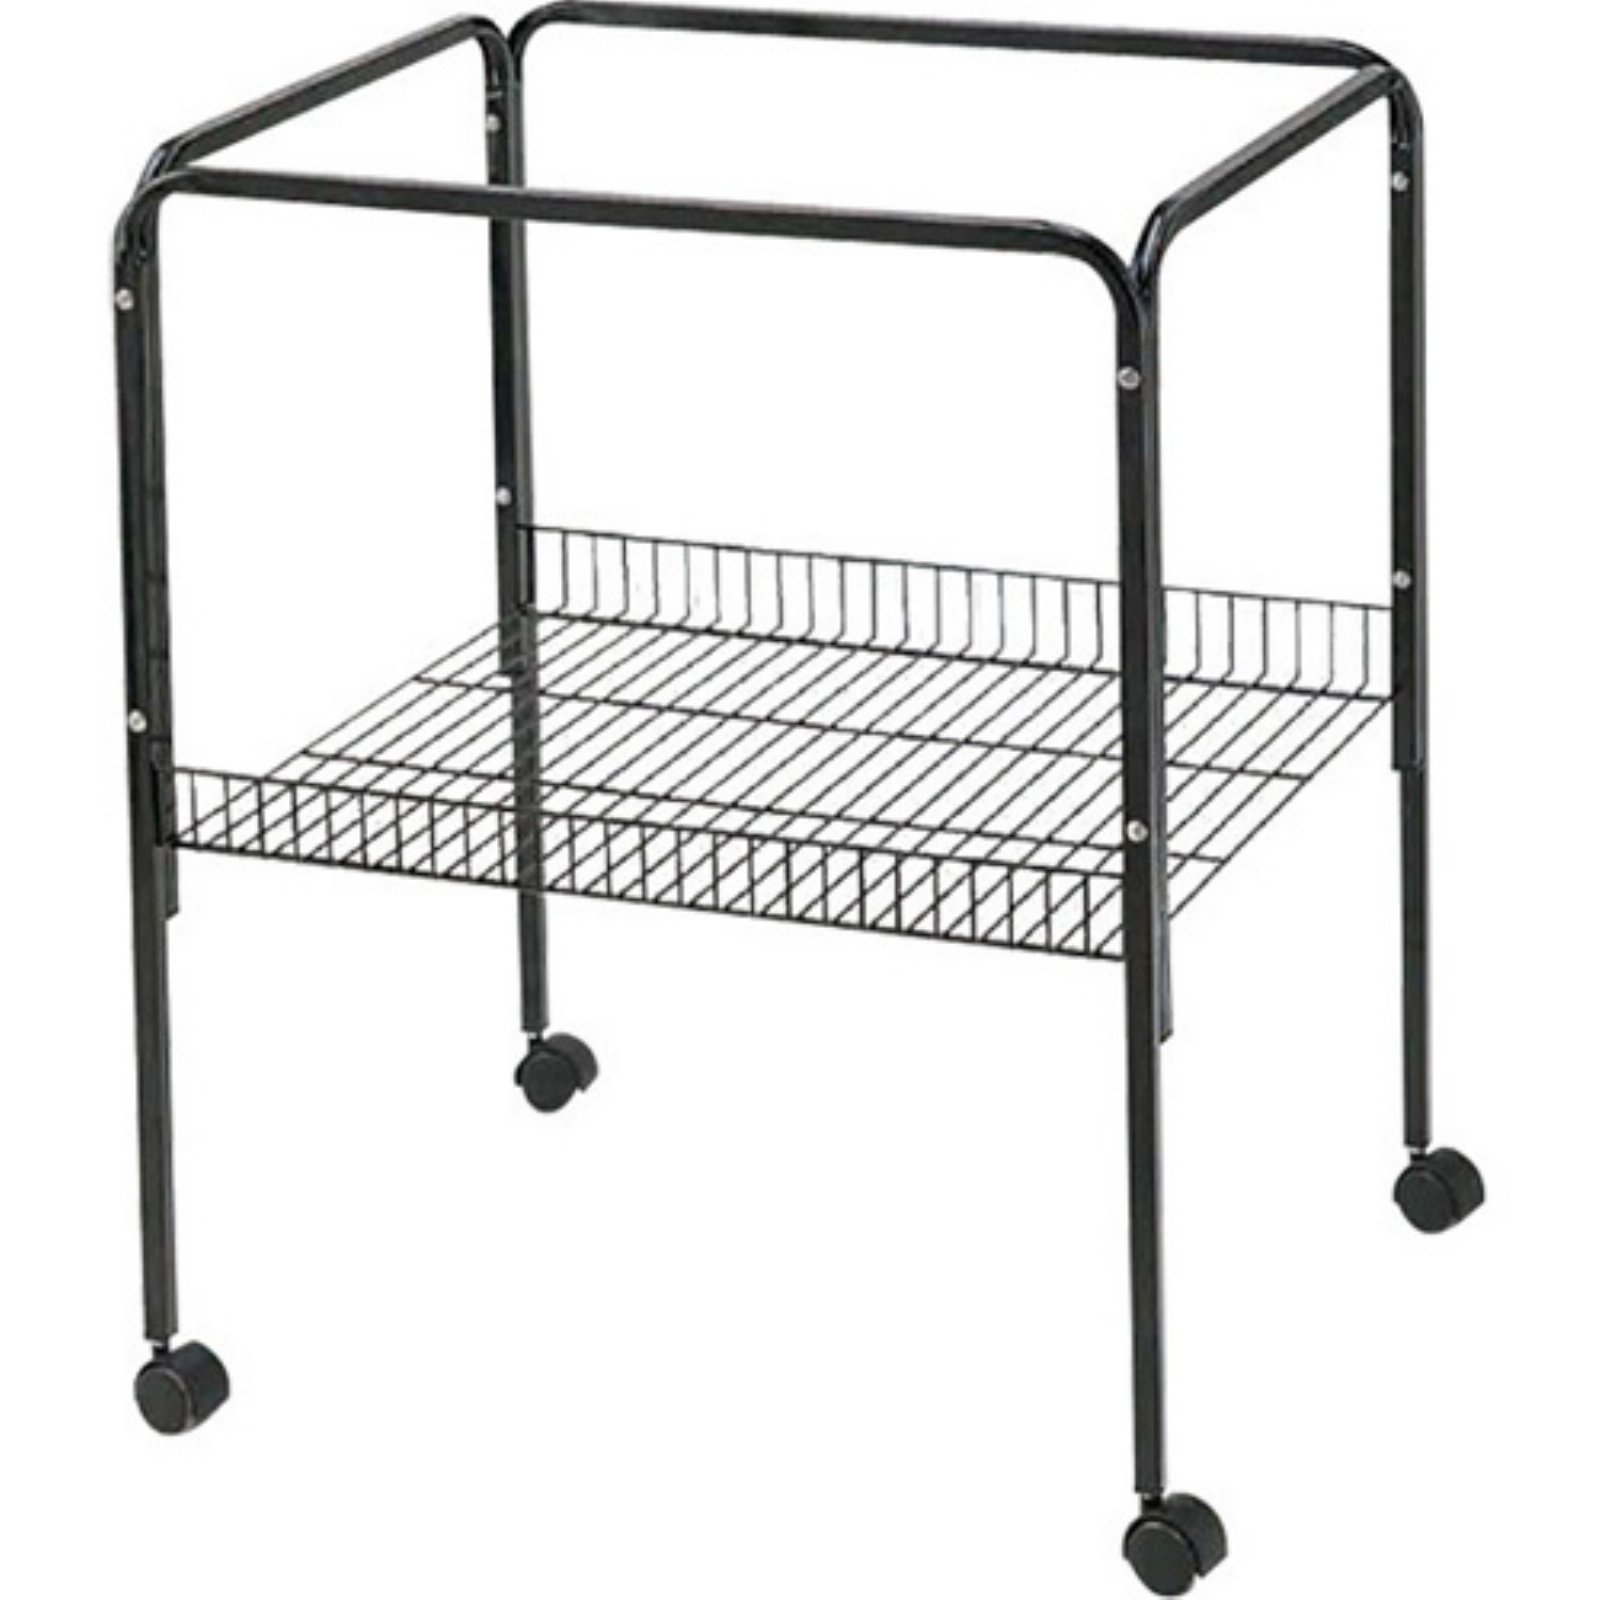 Image of A and E Cage Co. Black Bird Cage Stand